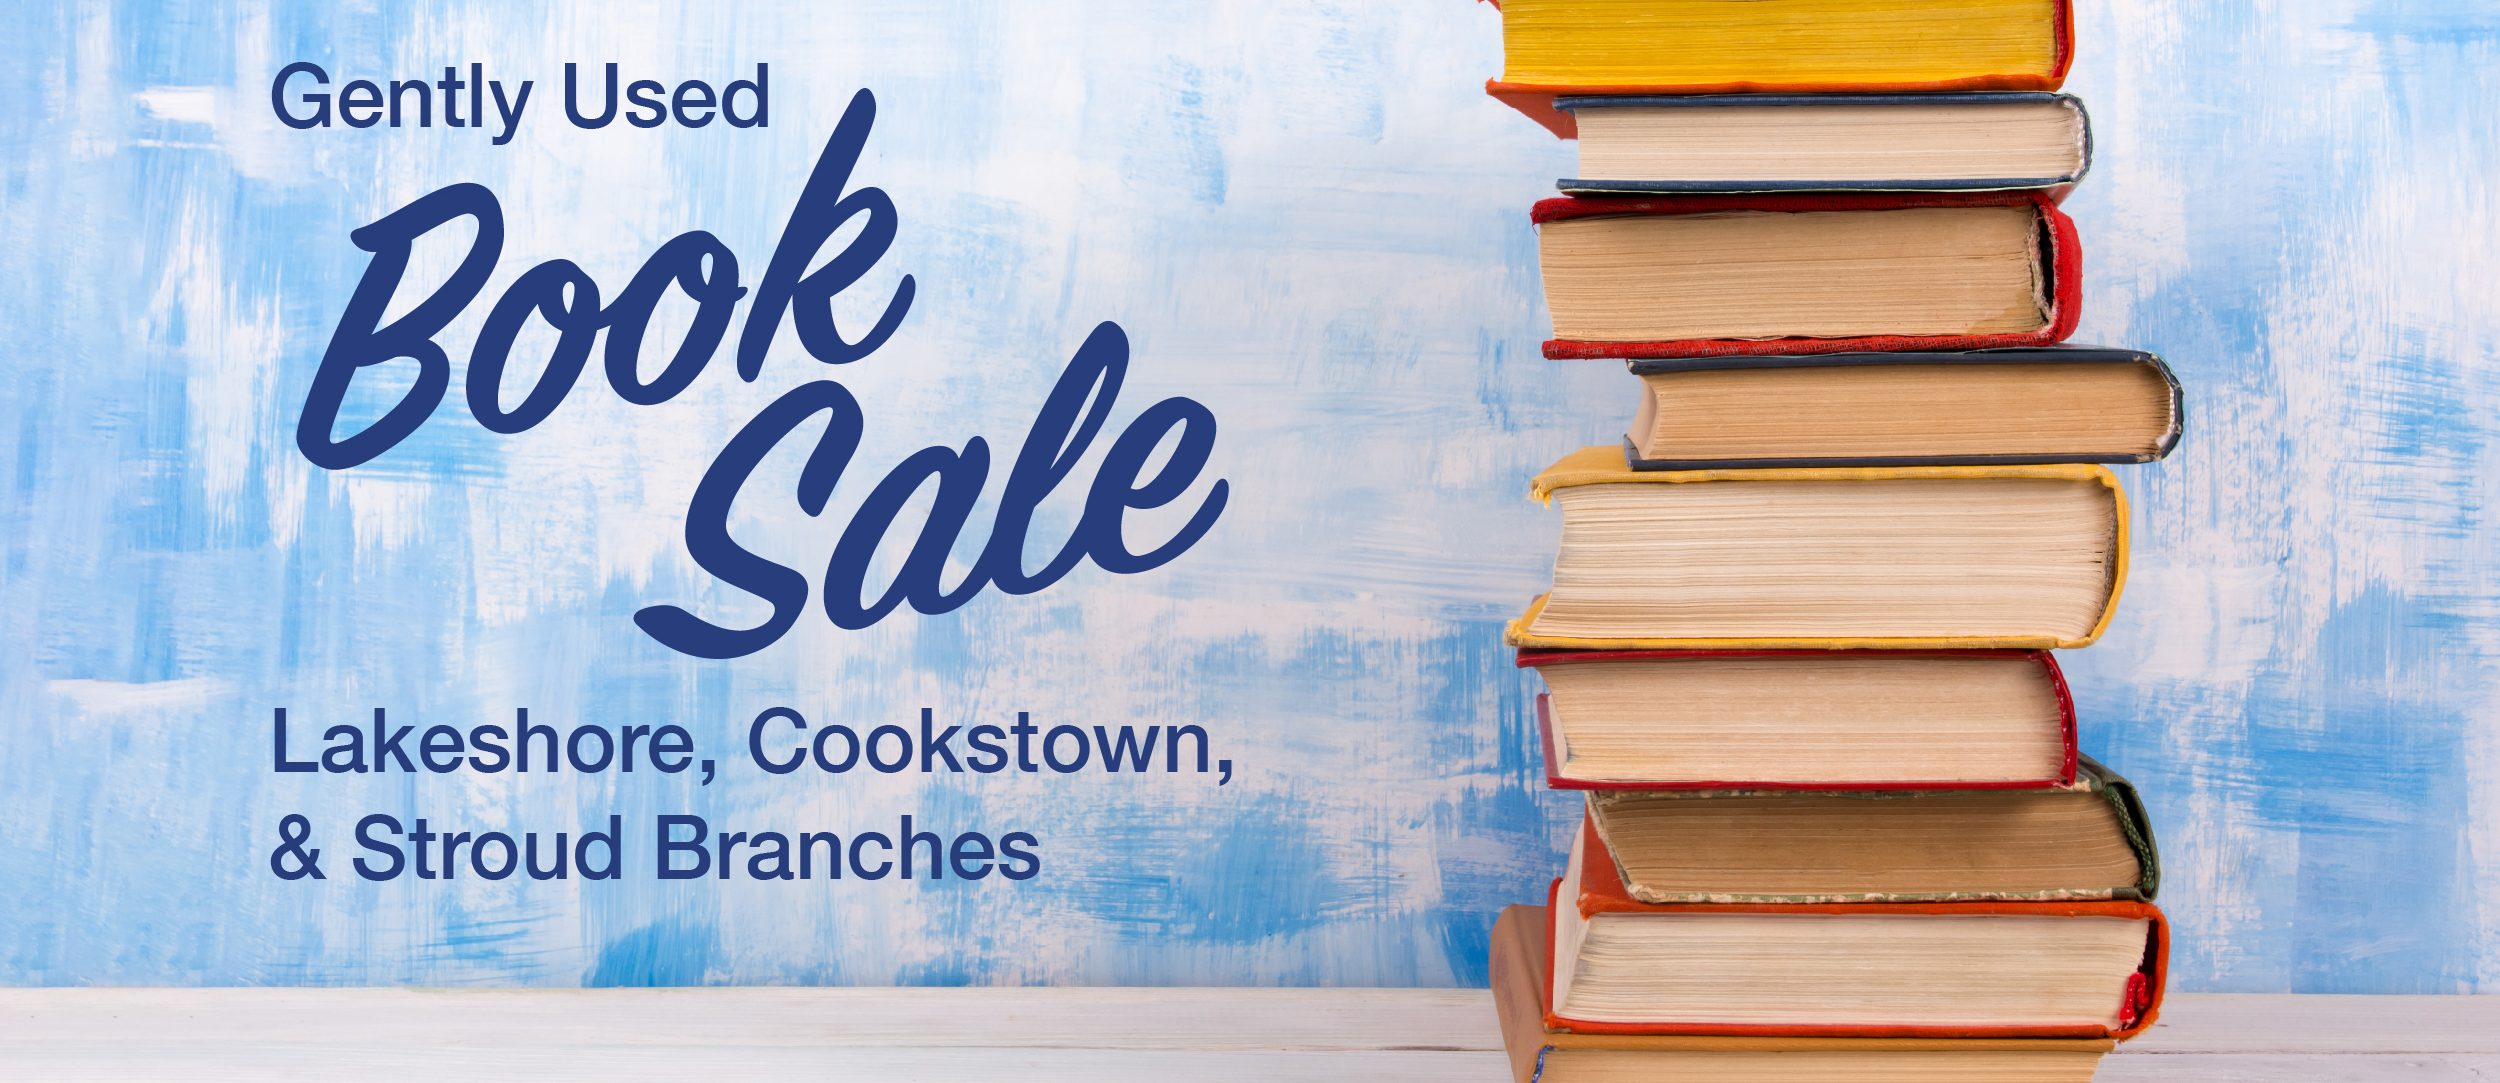 Gently Used Book Sale: Lakeshore, Cookstown and Stroud Branches